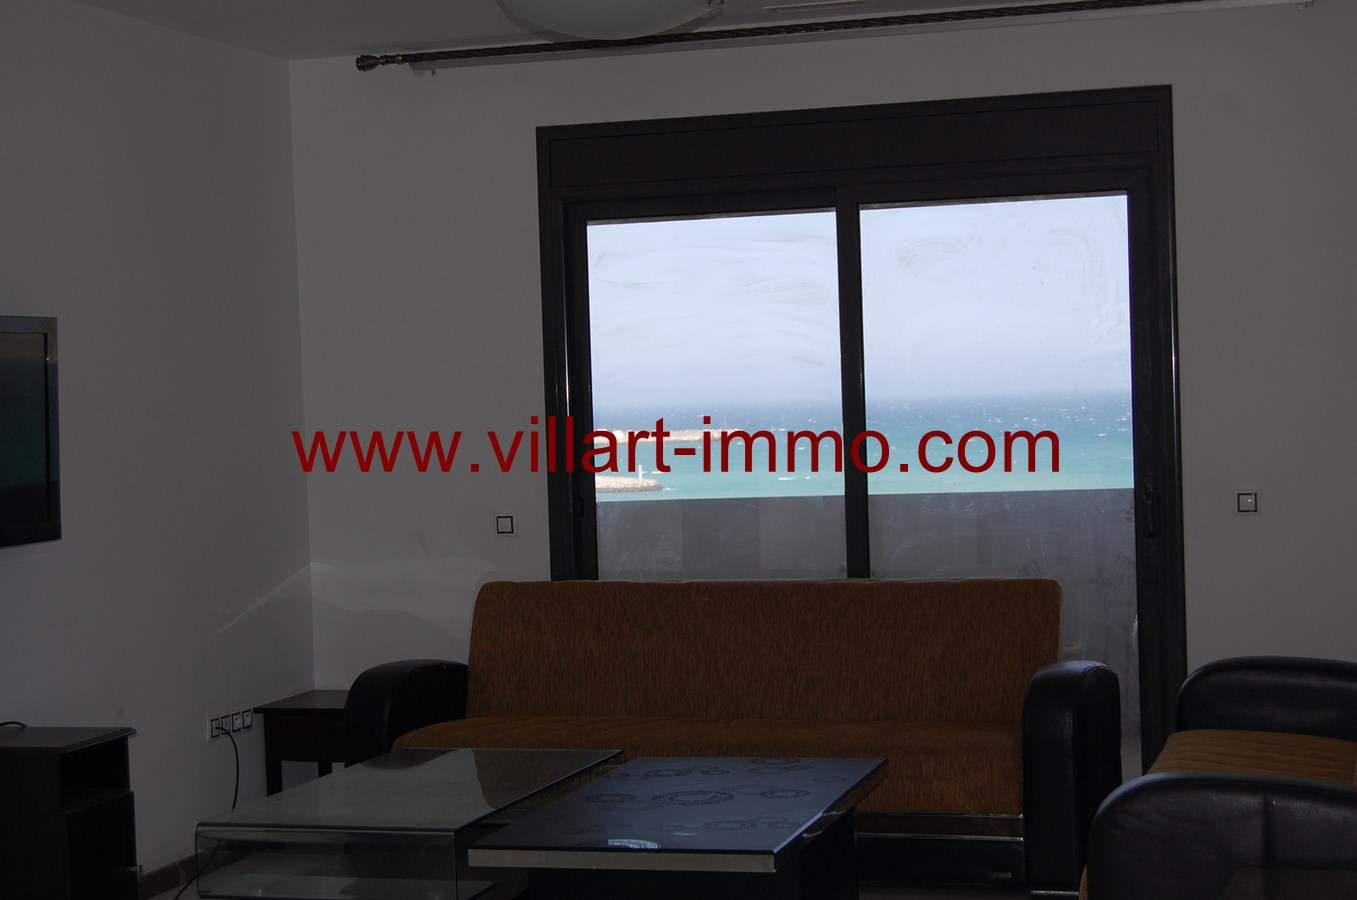 1-a-vendre-appartement-tanger-quartier-playa-salon-va432-villart-immo